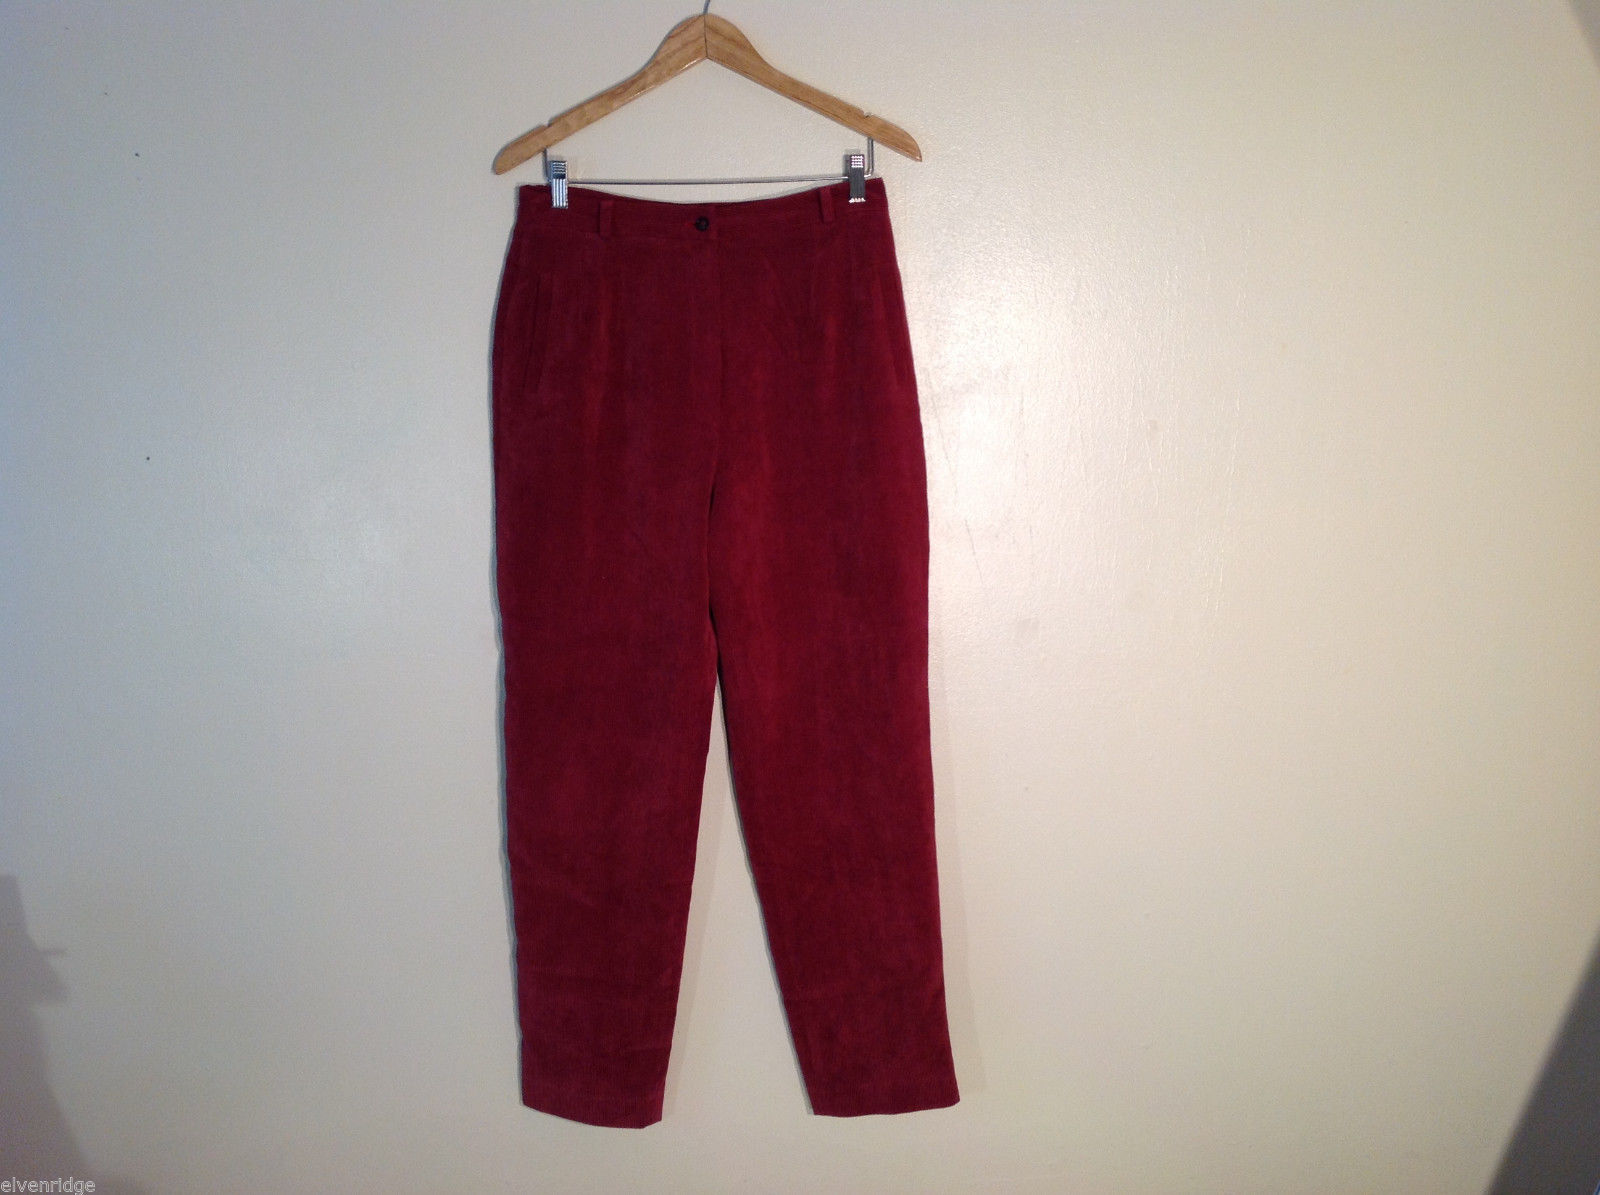 Kerrymara Women's Size L Corduroy Pants Rusty Red Side Pockets Belt Loops Button